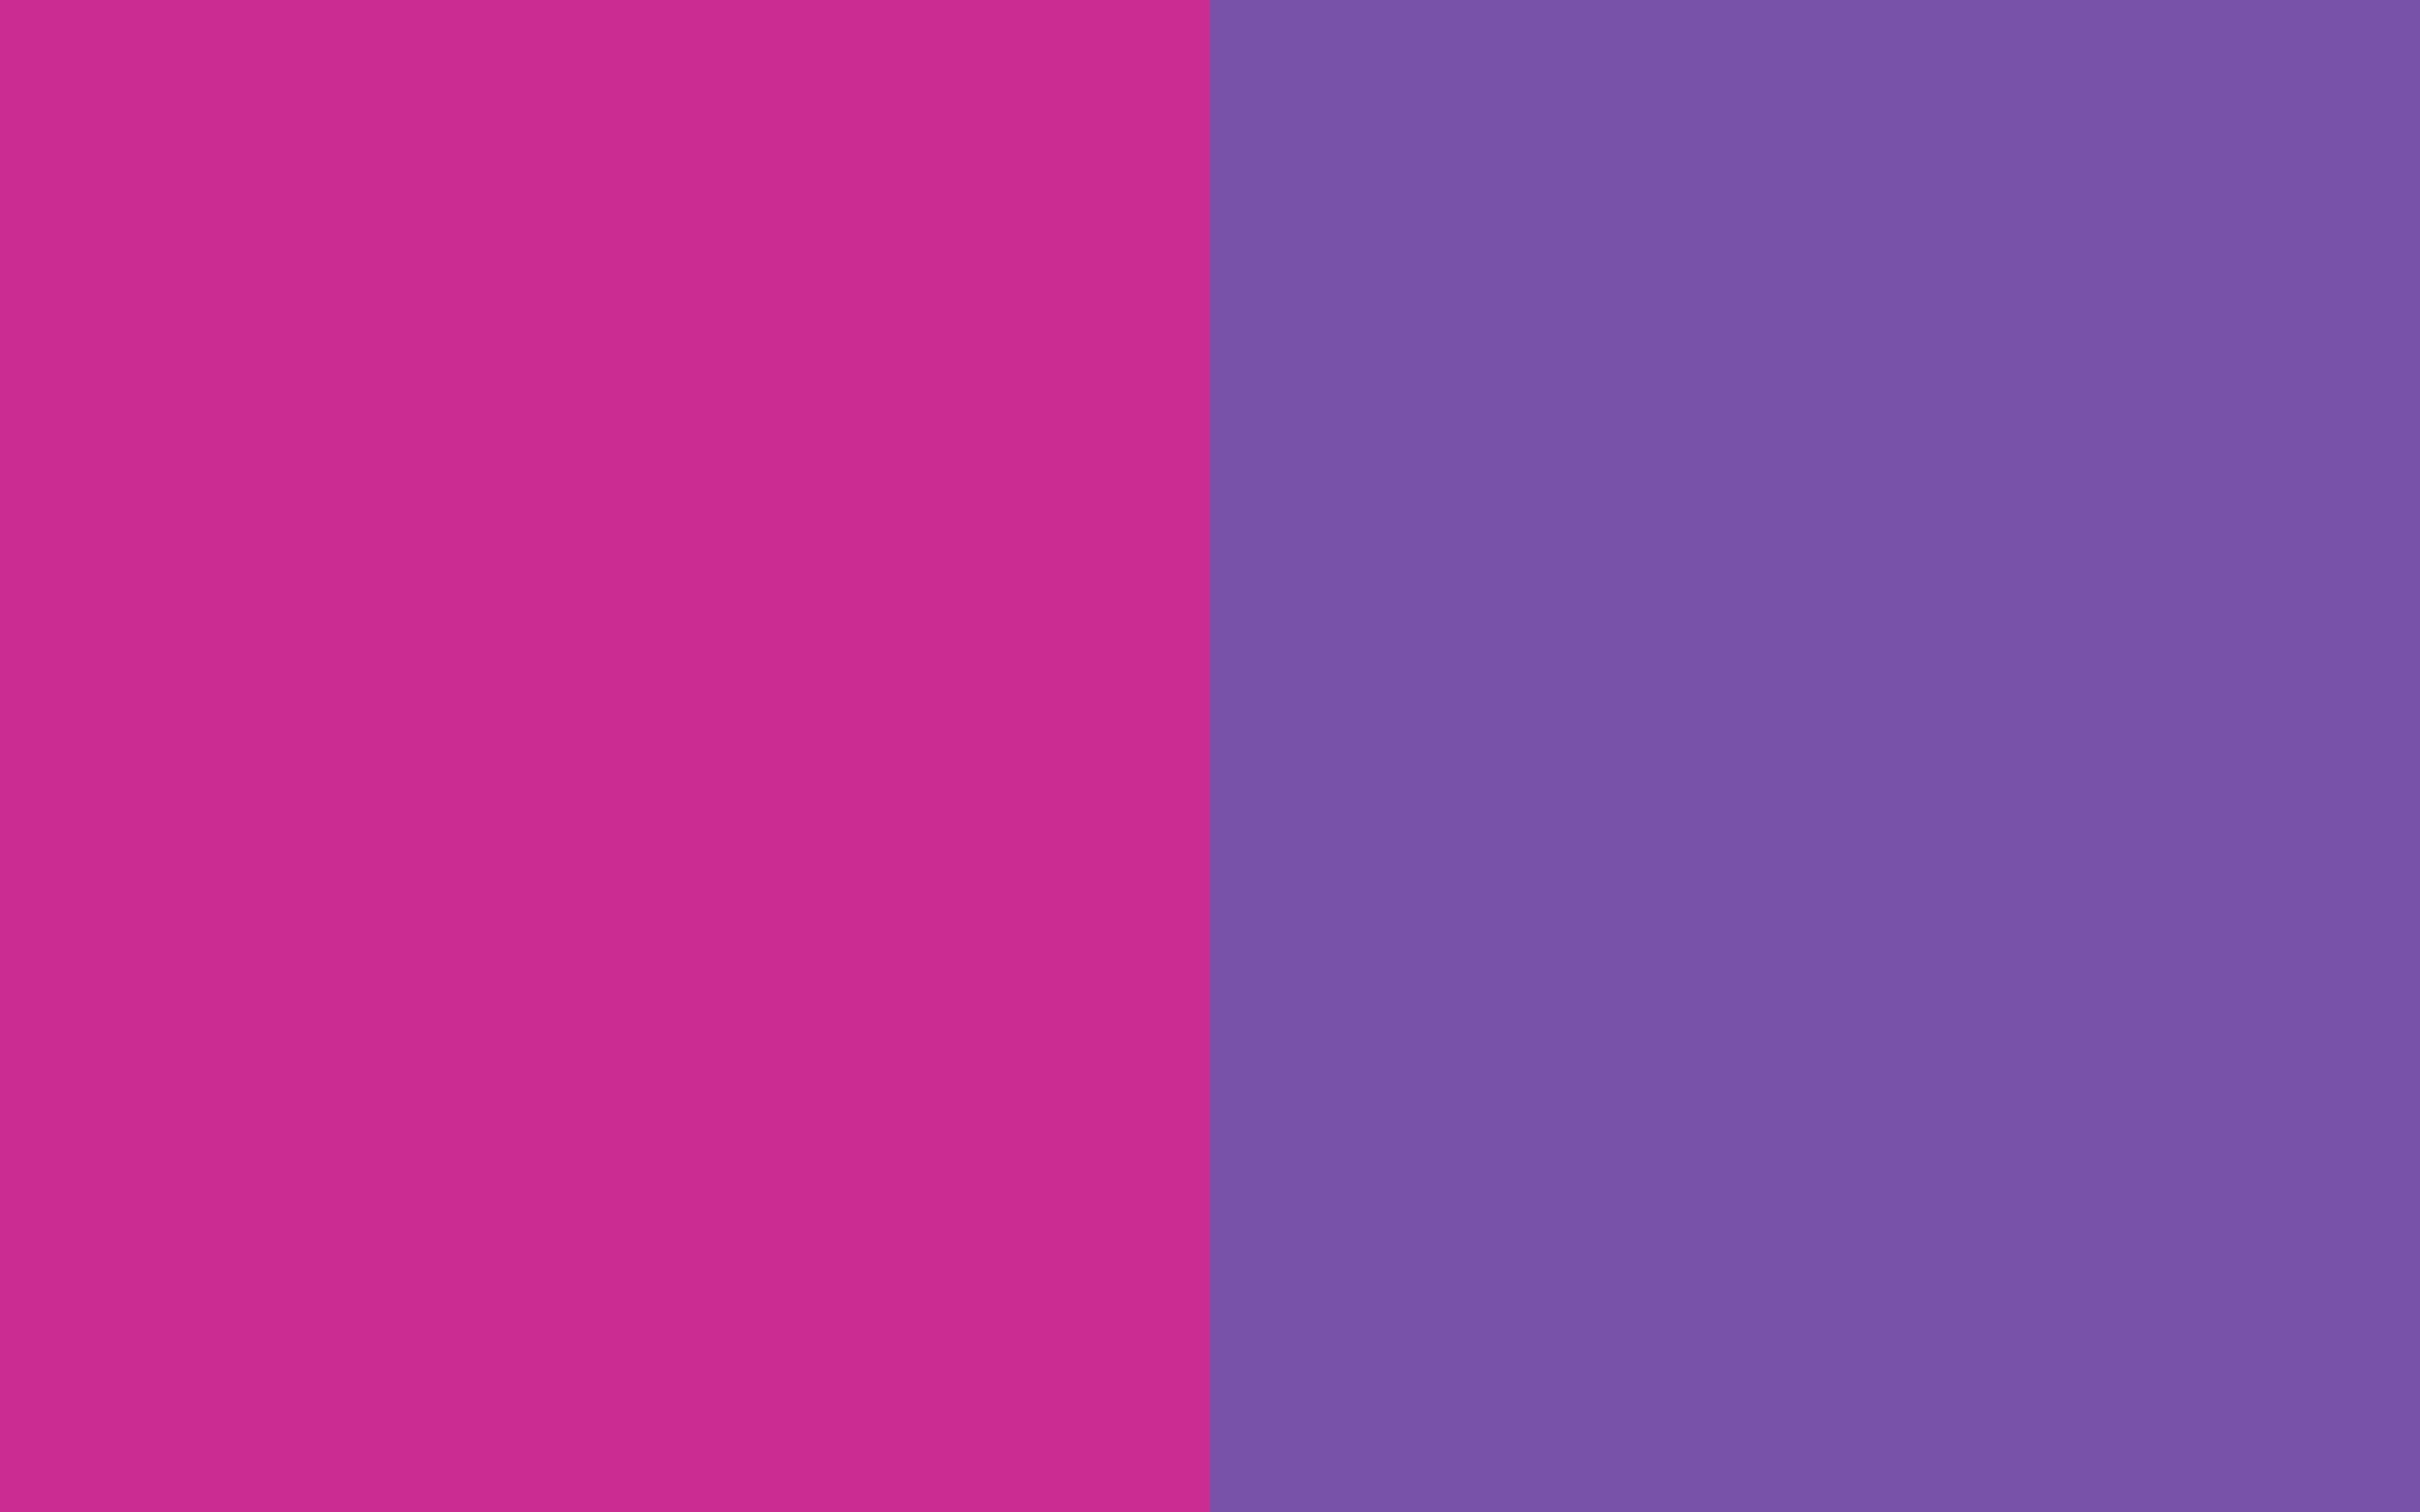 2560x1600 Royal Fuchsia and Royal Purple Two Color Background 2560x1600